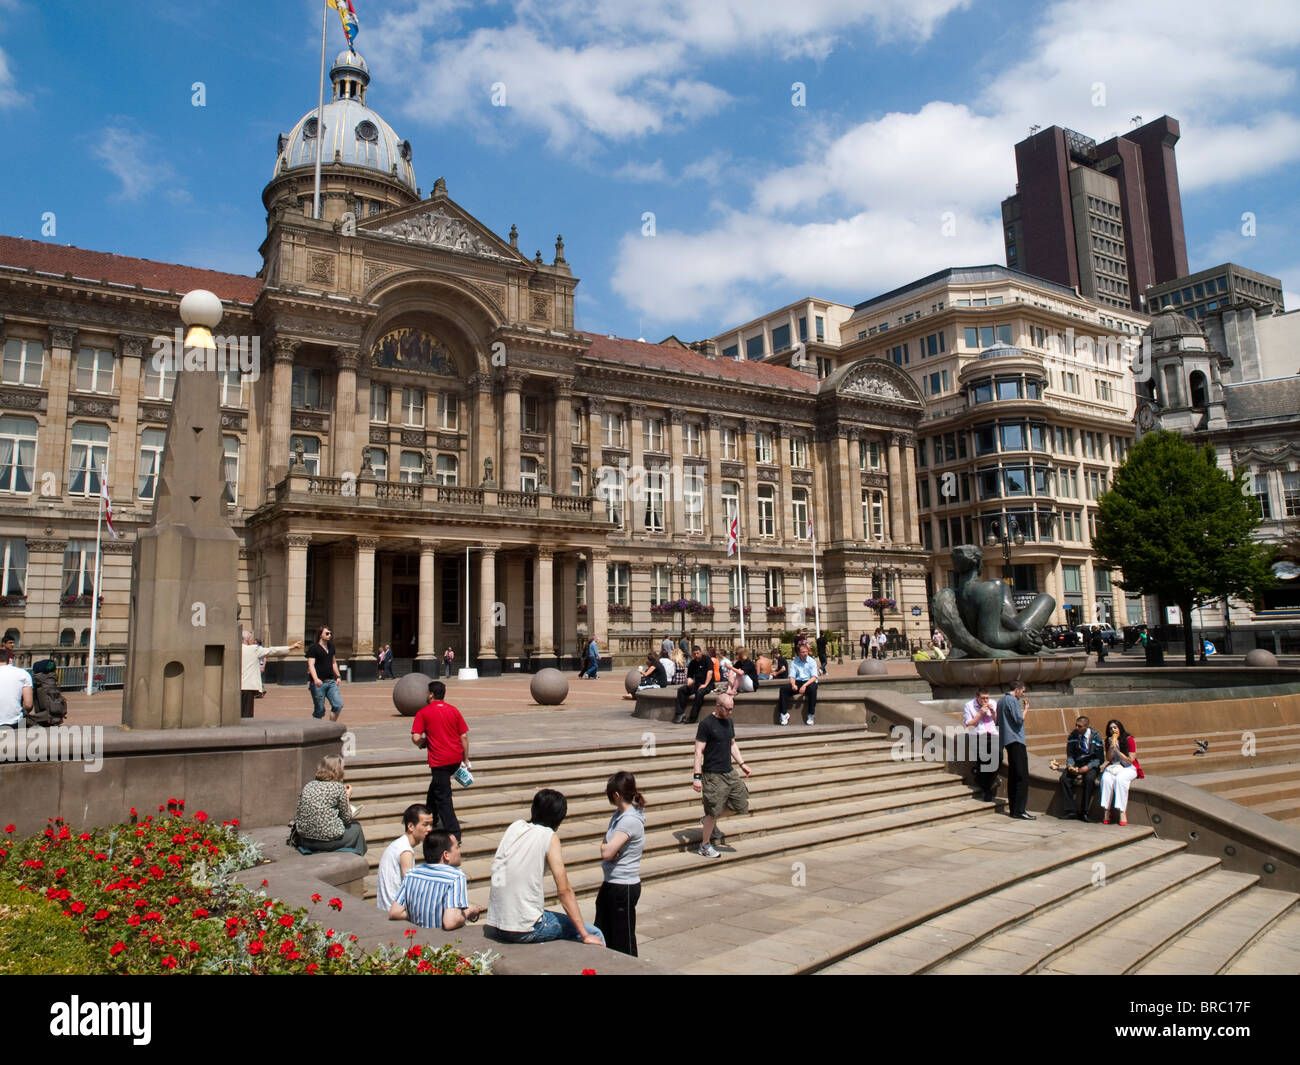 Victoria Square in Birmingham City Centre, West Midlands England UK - Stock Image